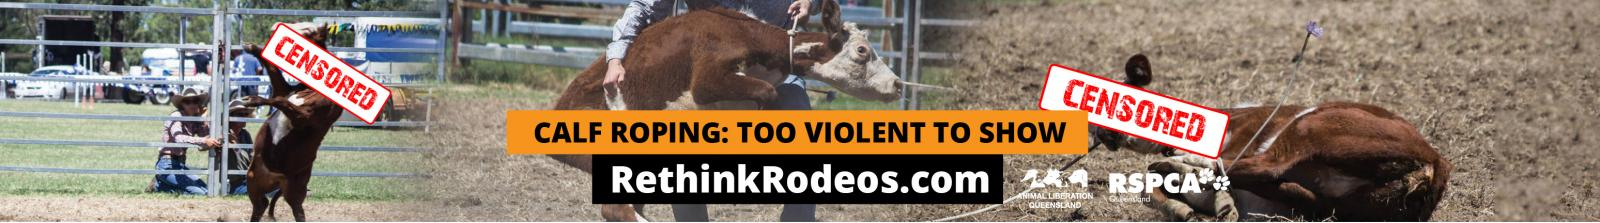 Censored calf roping billboard 2